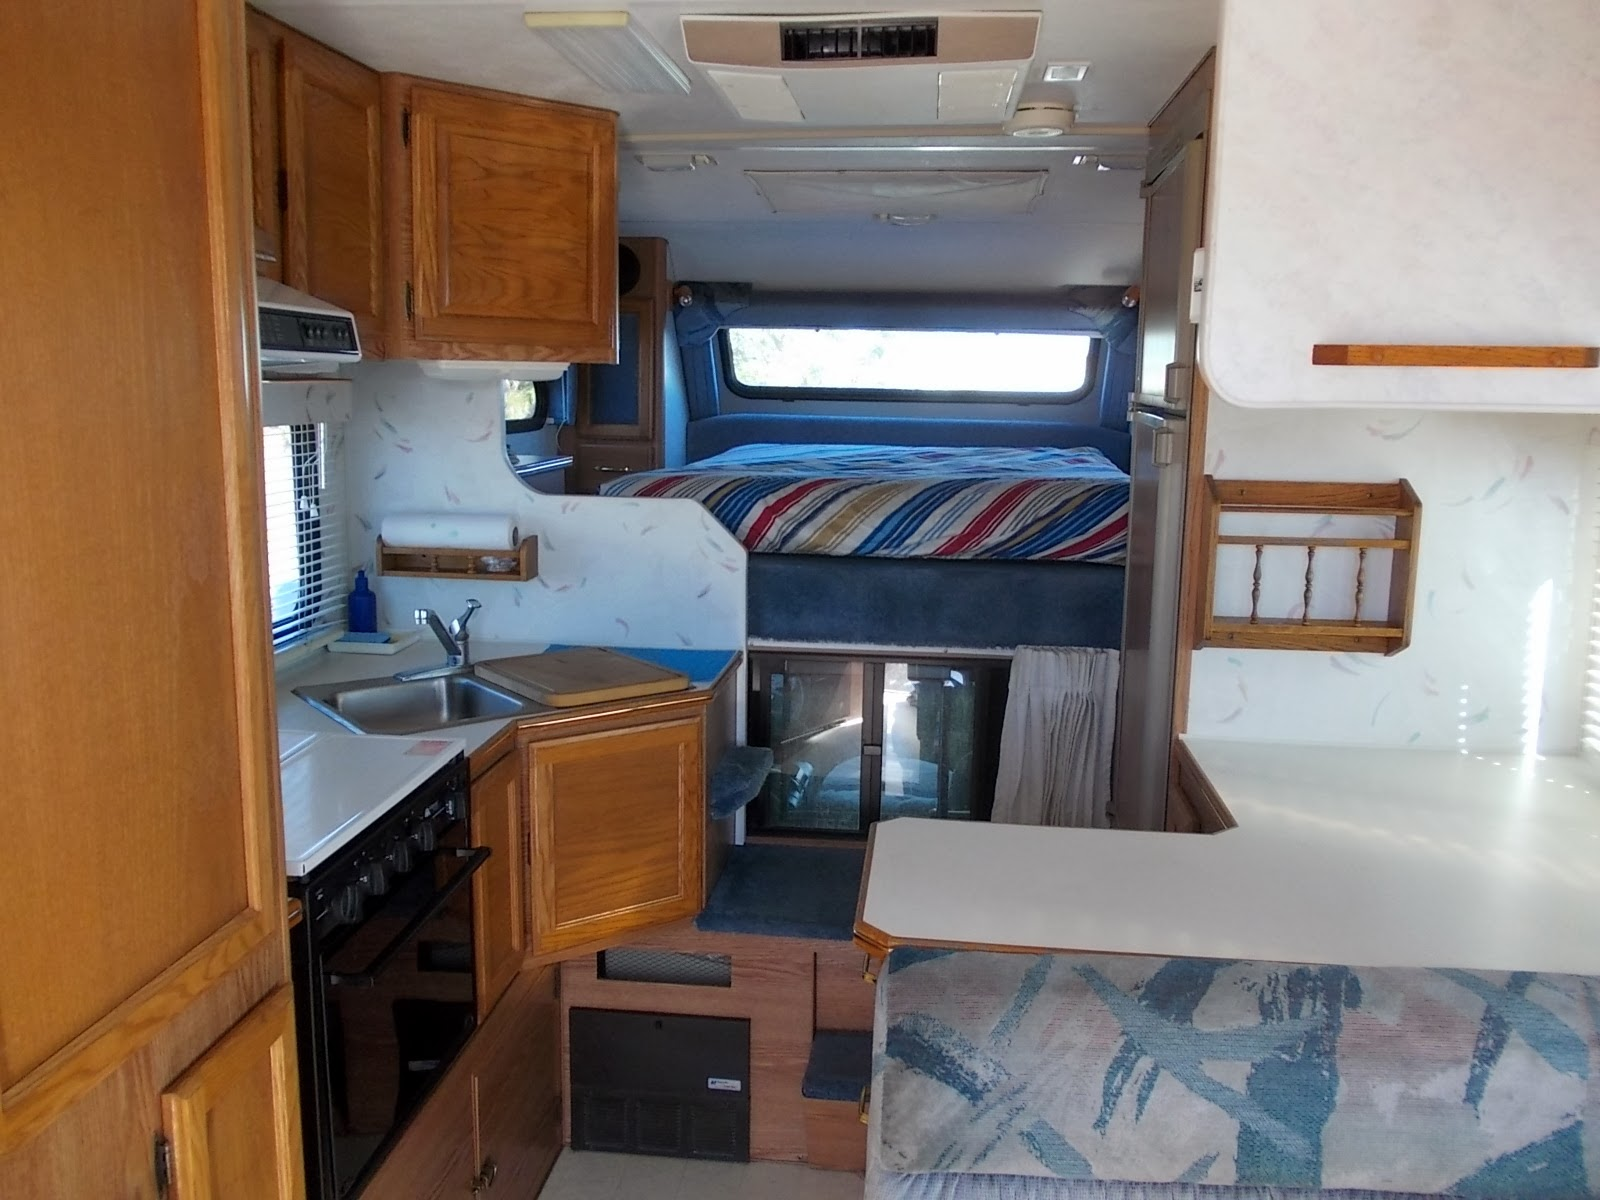 Pics Of Truck Camper Interior Because My Sister Is E Mail Attachment Impaired